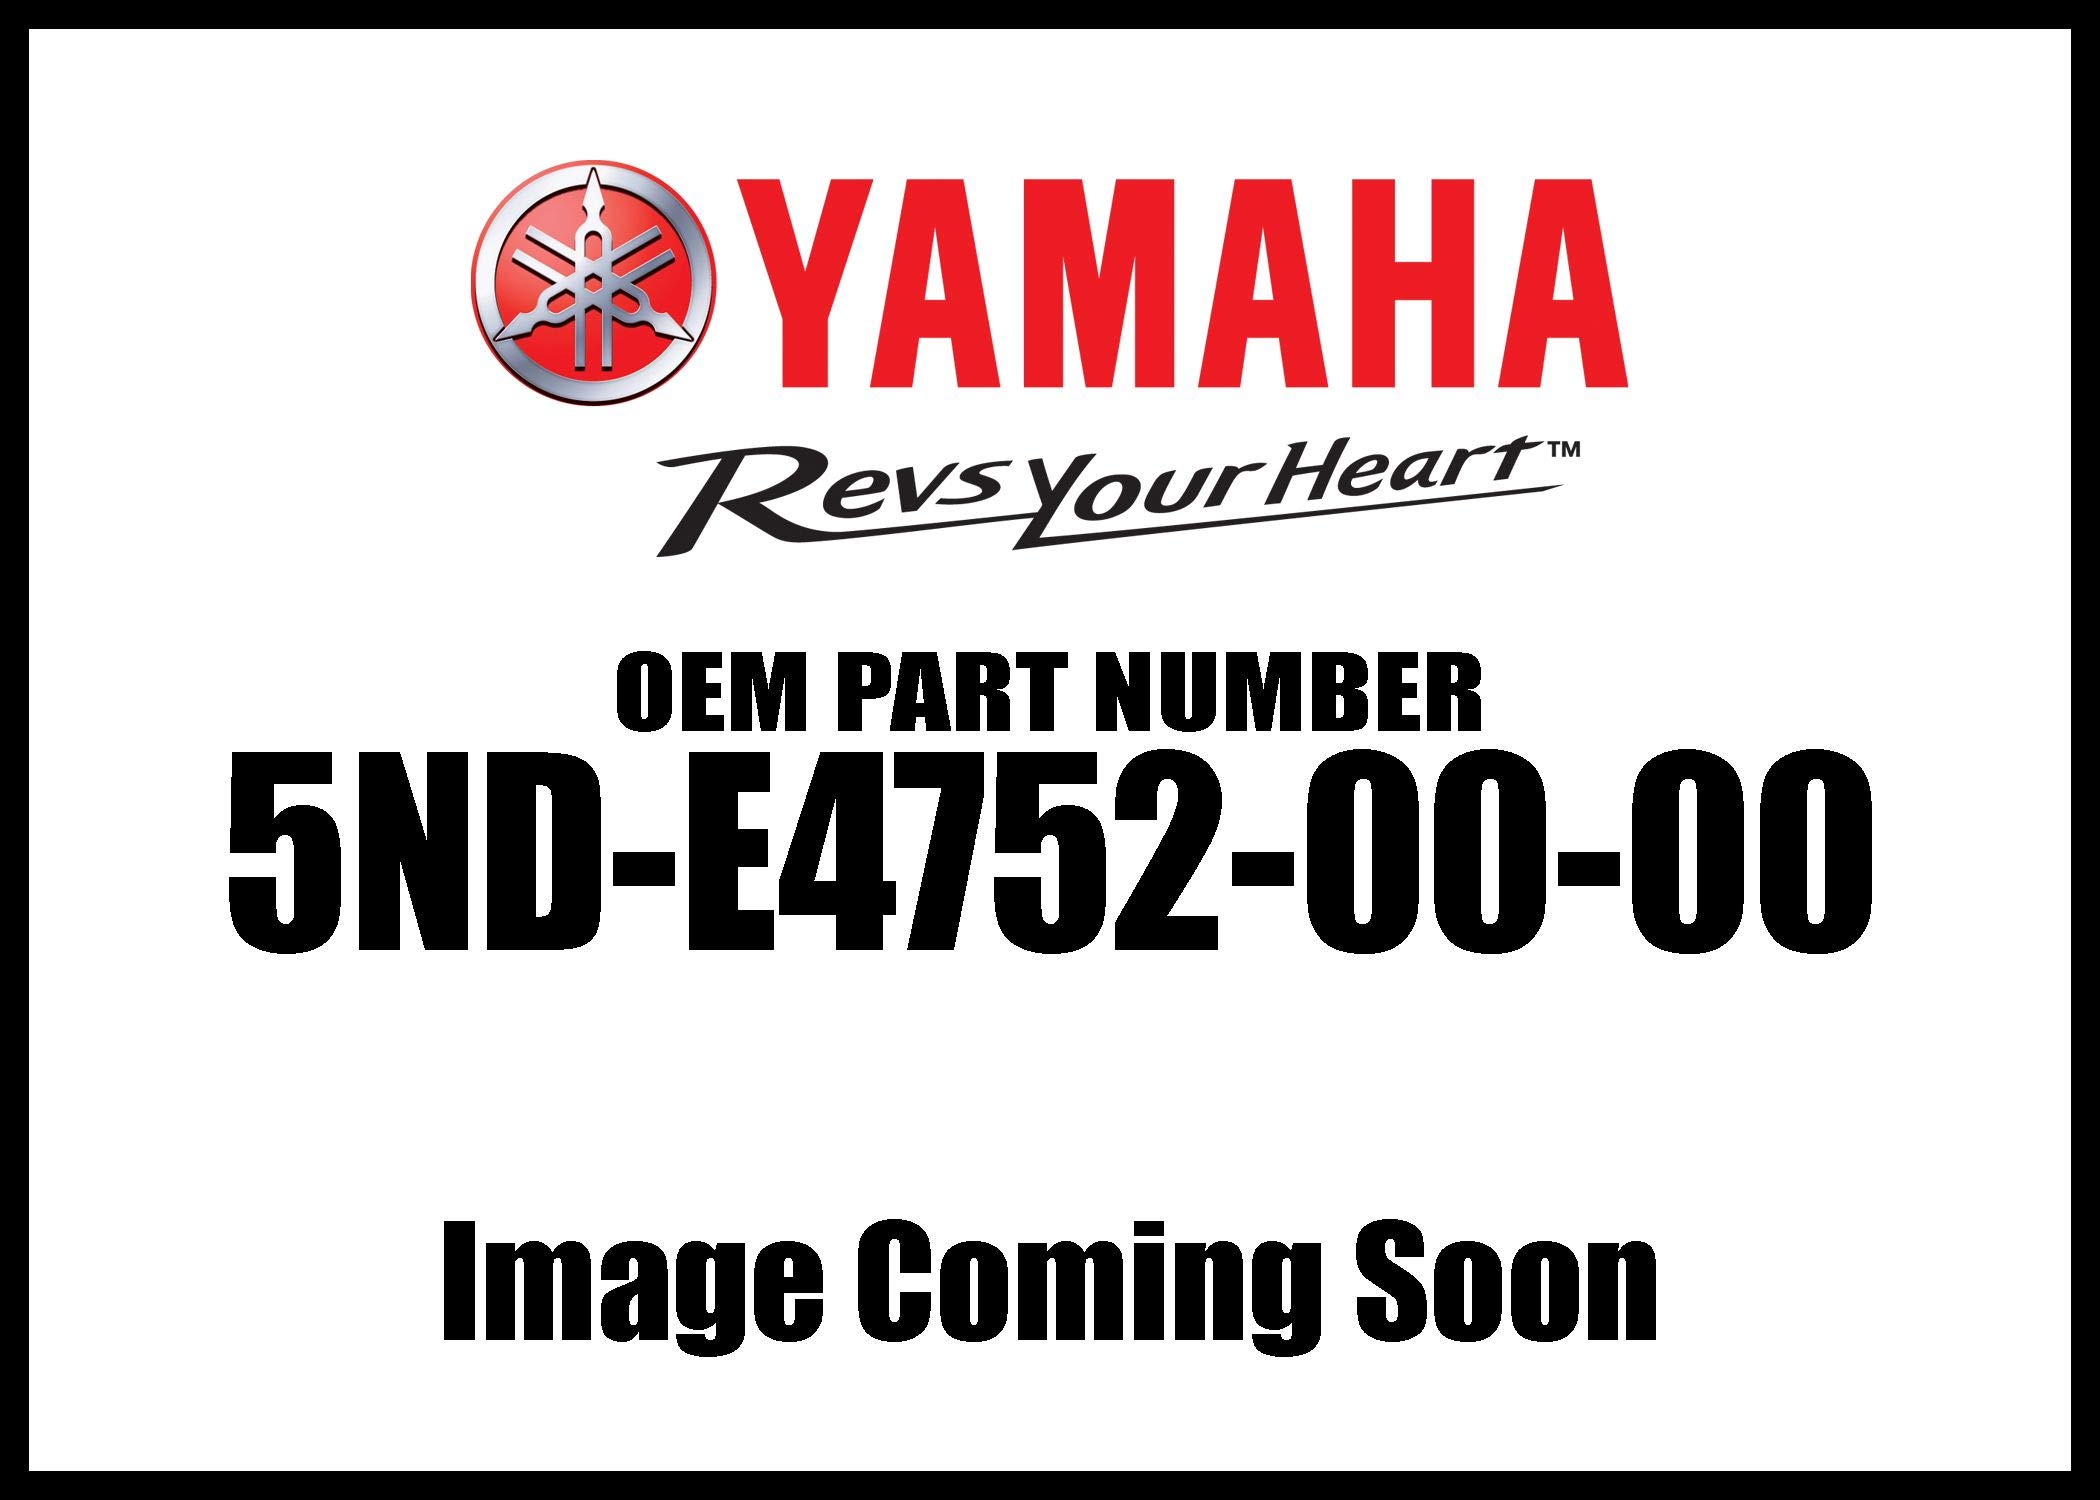 Yamaha 5ND-E4752-00-00 Pipe, Outlet; ATV Motorcycle Snow Mobile Scooter Parts